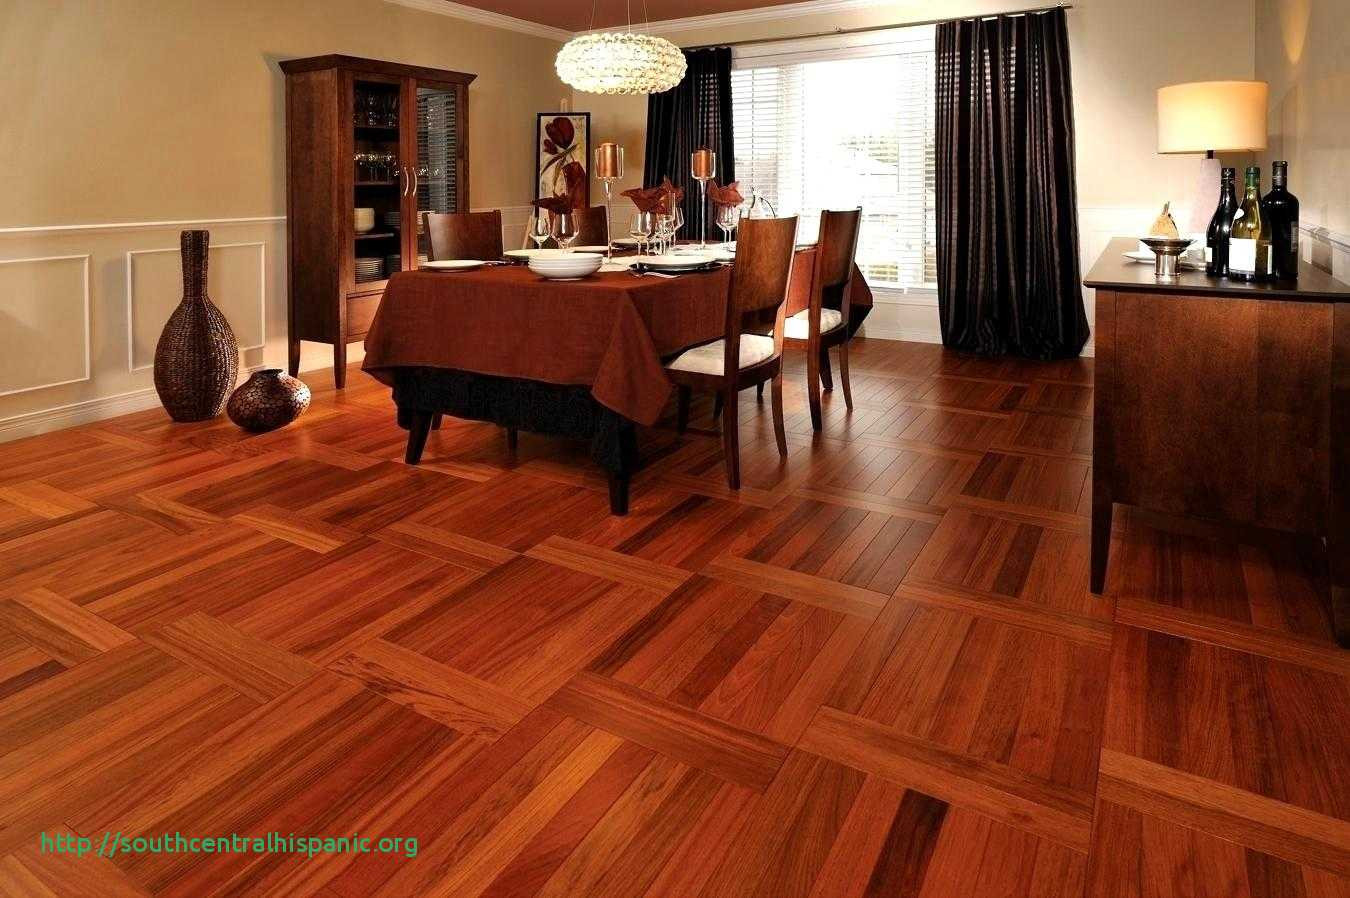 How to Use Bruce Hardwood Floor Cleaner Of Kitchen Flooring Bruce Hardwood Kuxniya with Bruce Hardwood Flooring Company Meilleur De Breathtaking Kitchen Design Bruce Hardwood Floors Ideas Ty